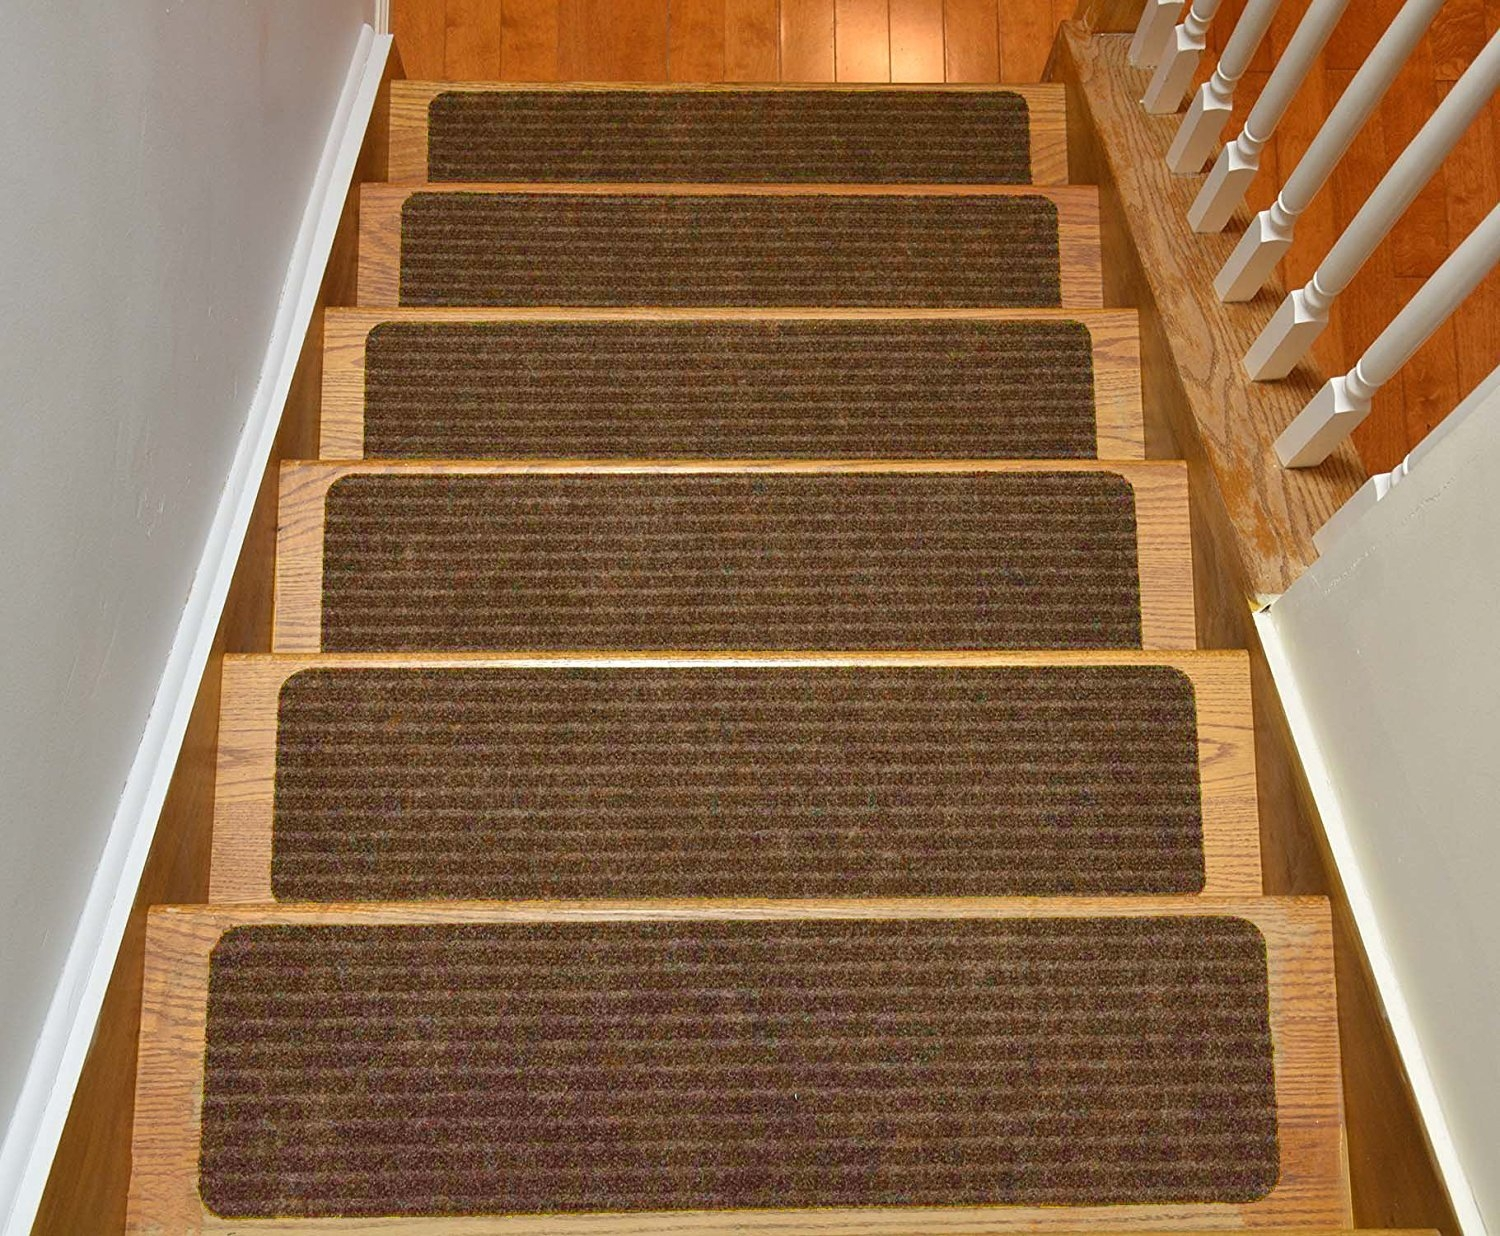 Stair Treads Collection Set Of 13 Indoor Skid Slip Resistant Brown Inside 8 Inch Stair Treads (View 4 of 20)